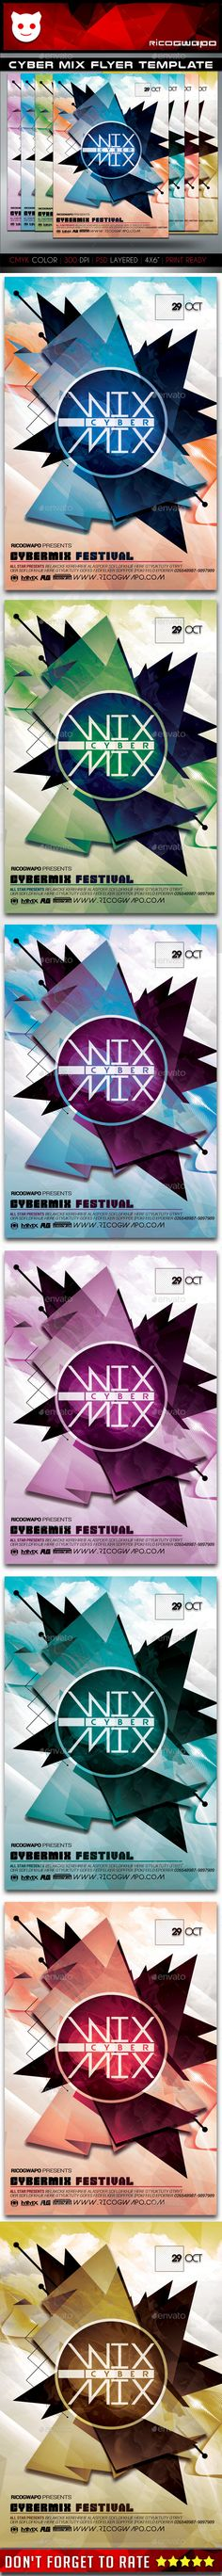 Cyber Mix Flyer Template PSD #design Download: http://graphicriver.net/item/cyber-mix-flyer-template/14354298?ref=ksioks